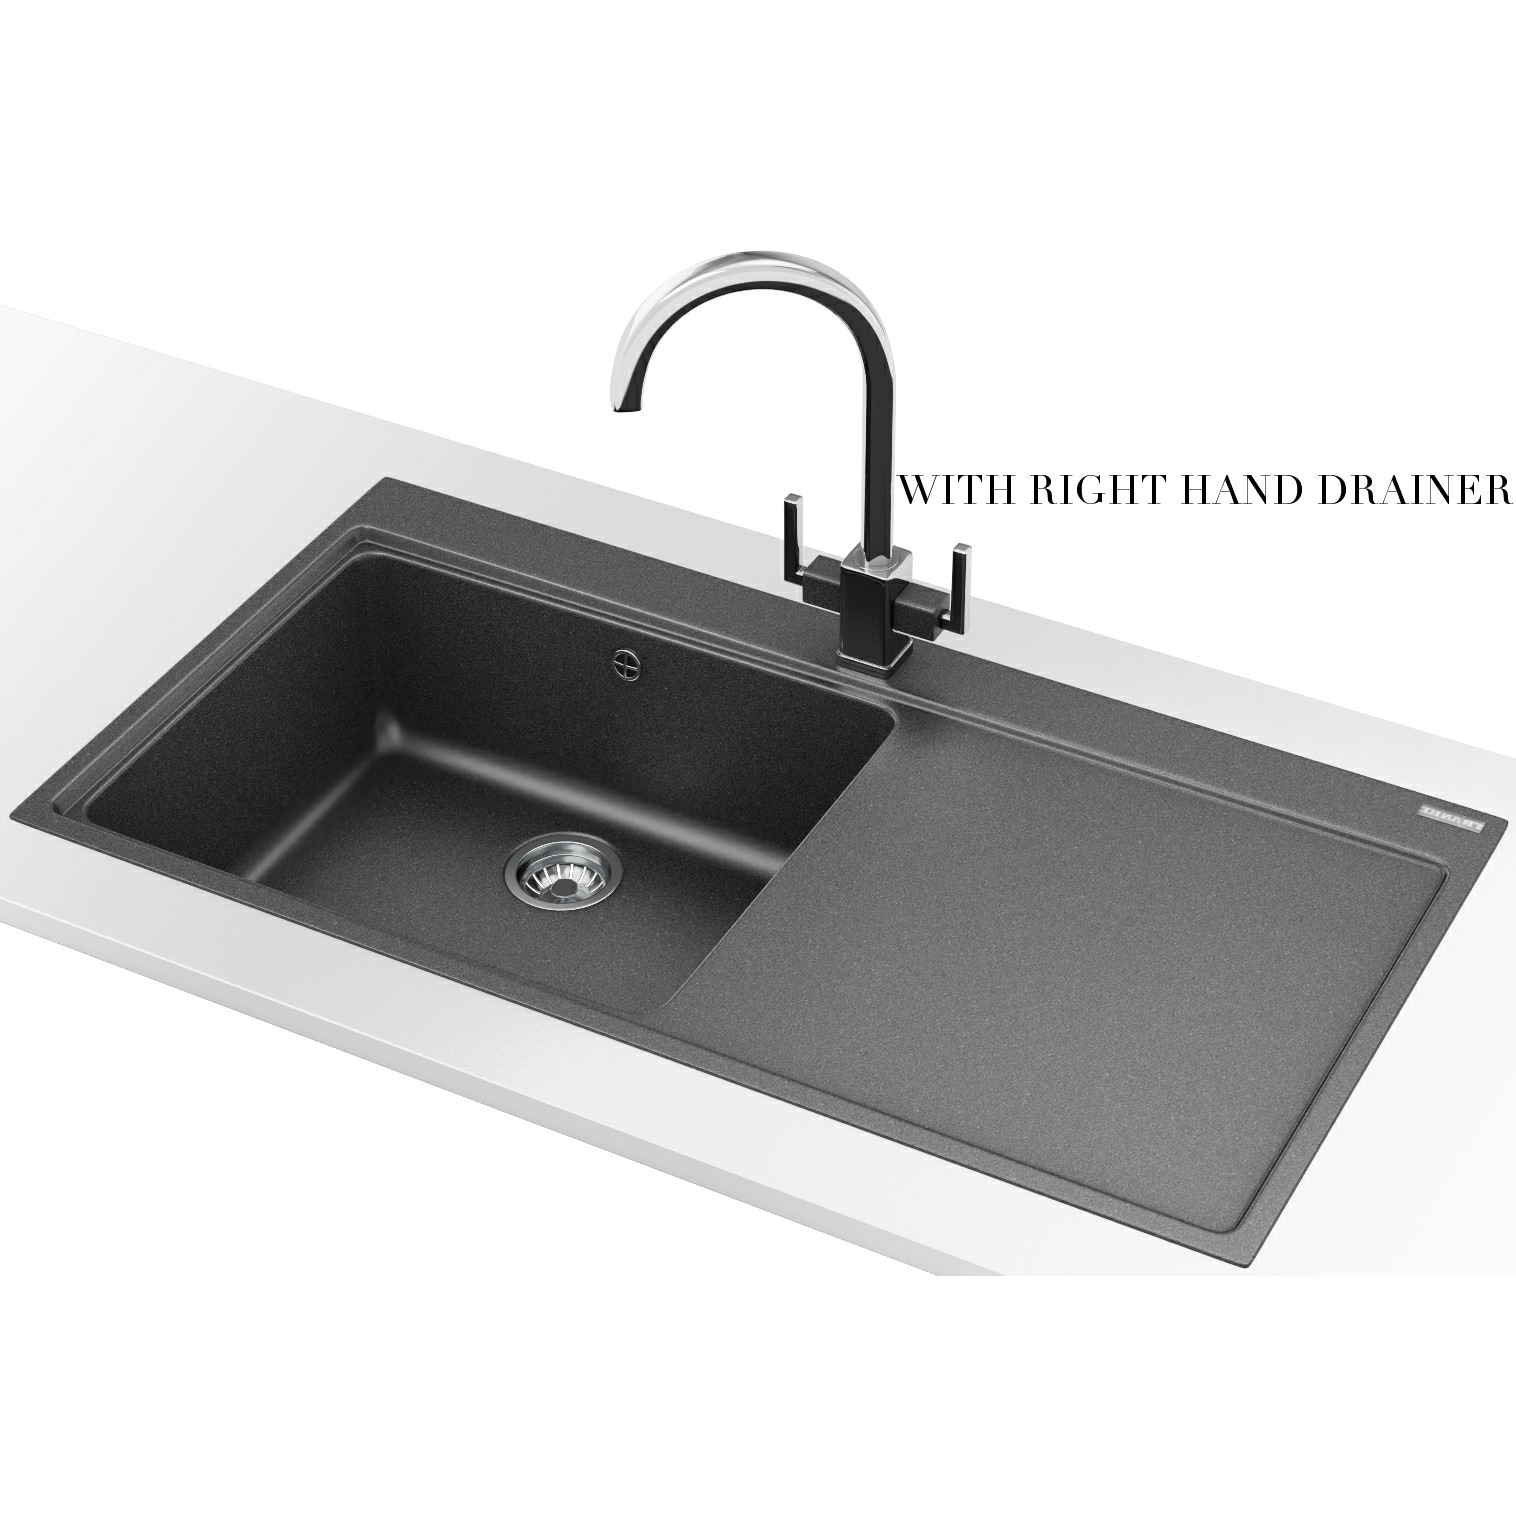 Franke Grey Sink : ... Franke Mythos Designer Pack MTG 611 Fragranite Stone Grey Kitchen Sink